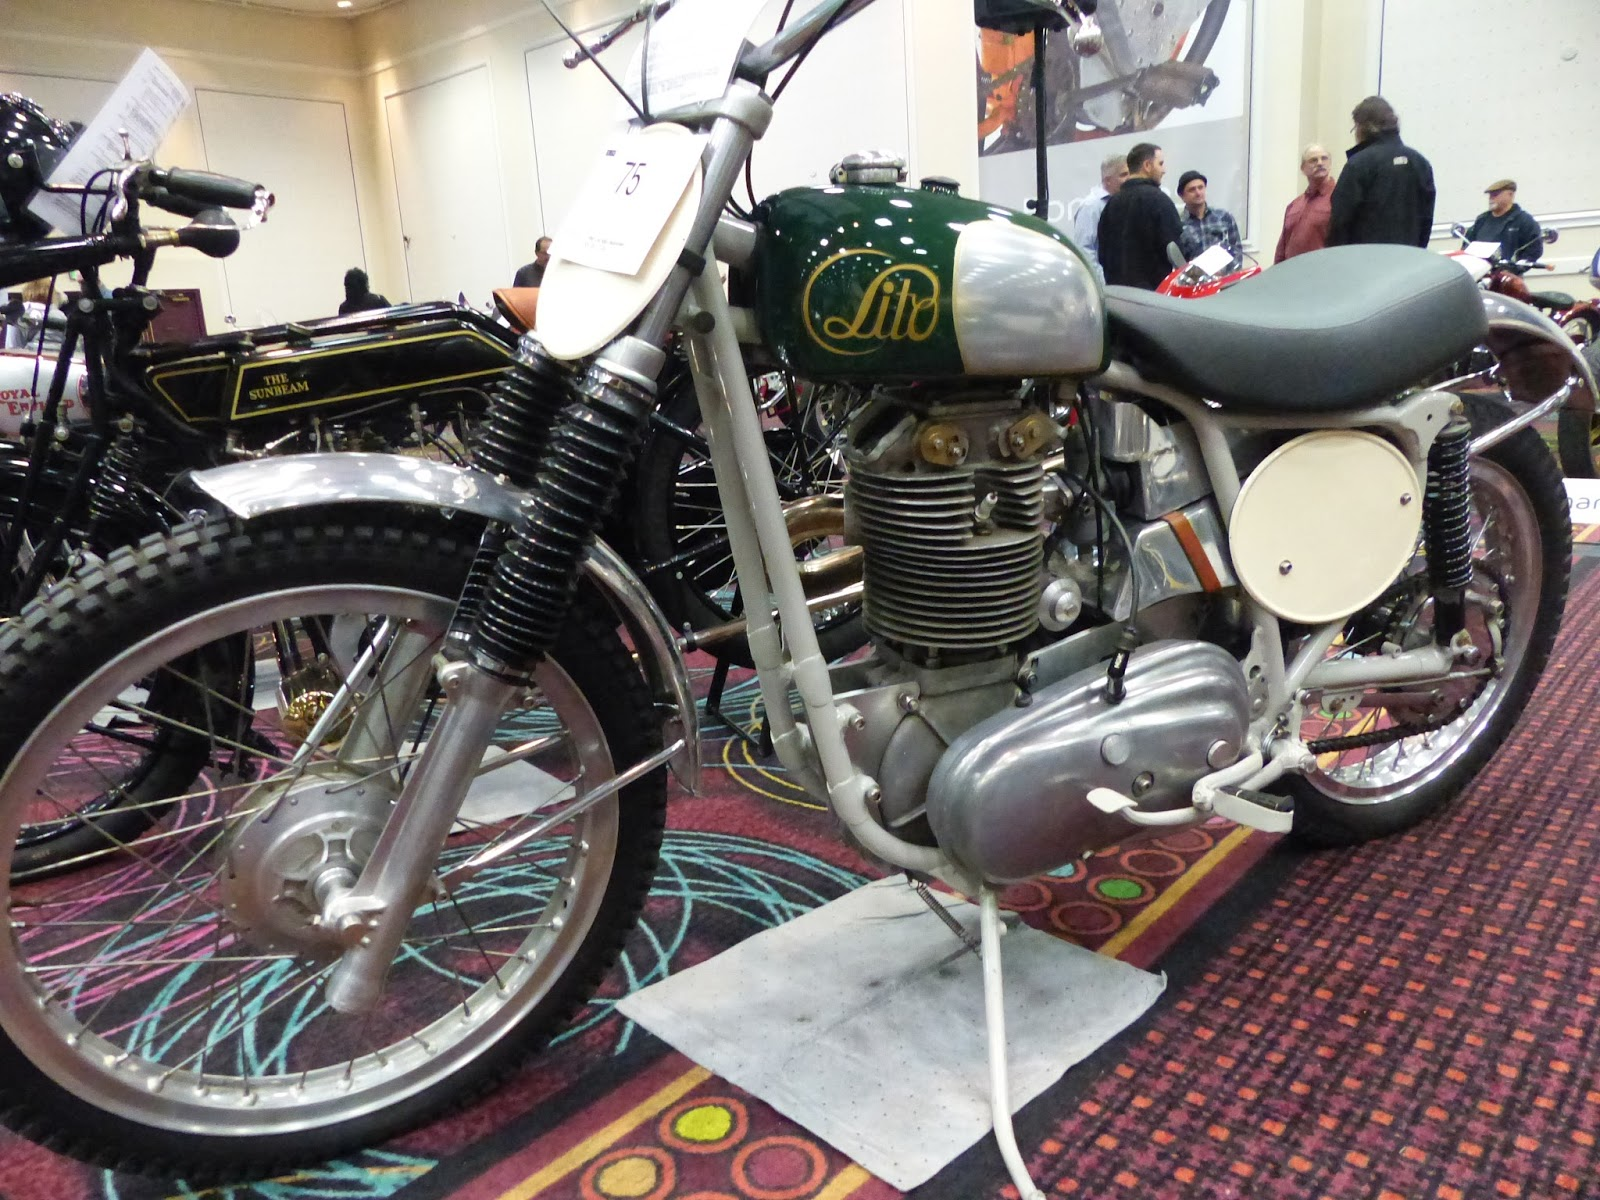 BSA SR 500 Gold images #65326